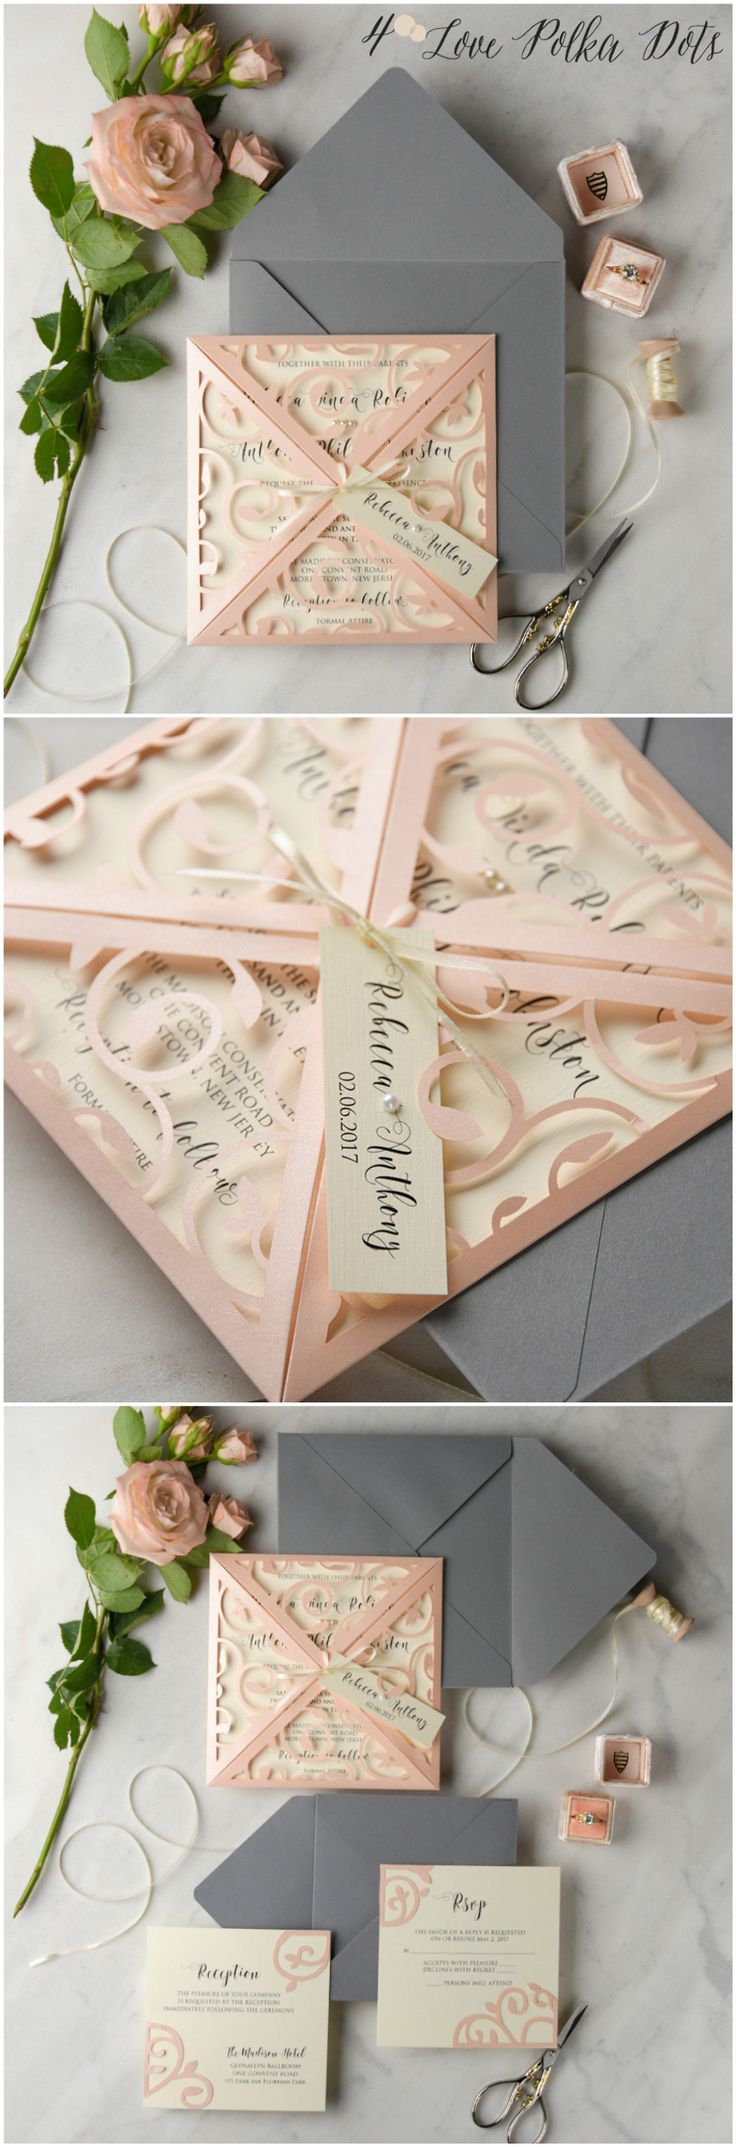 Romantic Blush & Grey laser cut lace wedding invitations #sponsored